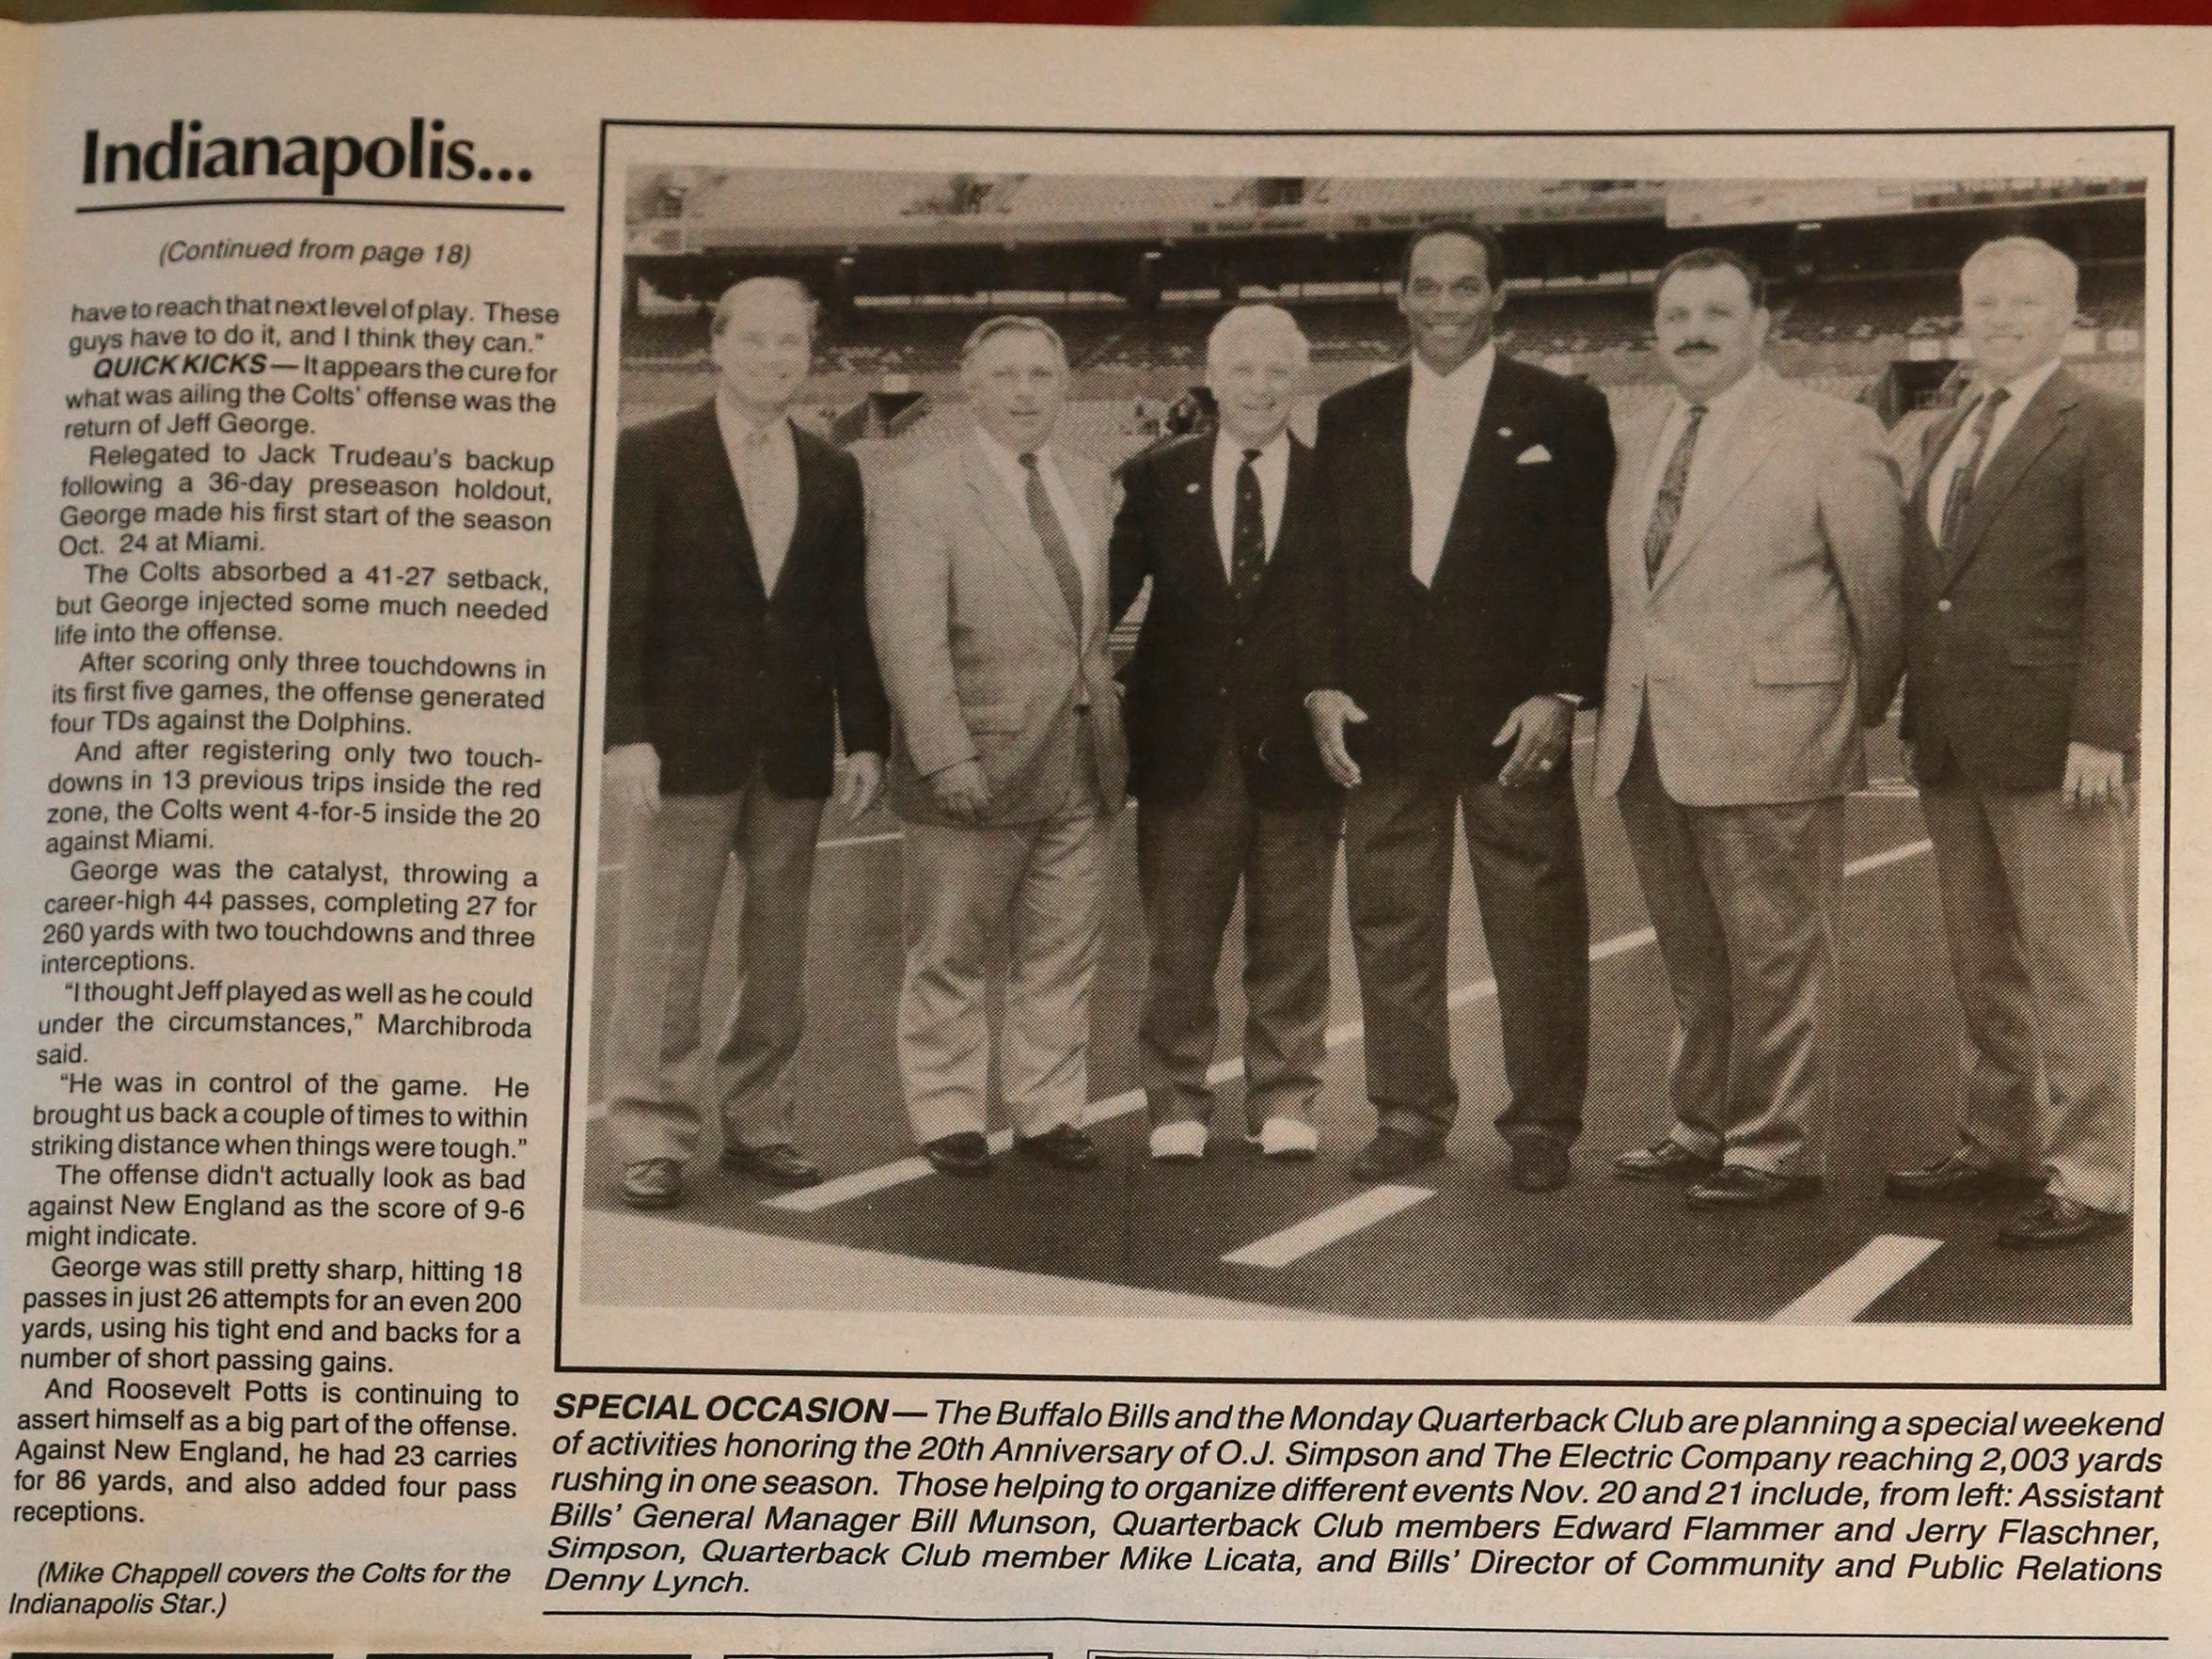 A photo on page 19 of the 'Buffalo Bills Report' shows